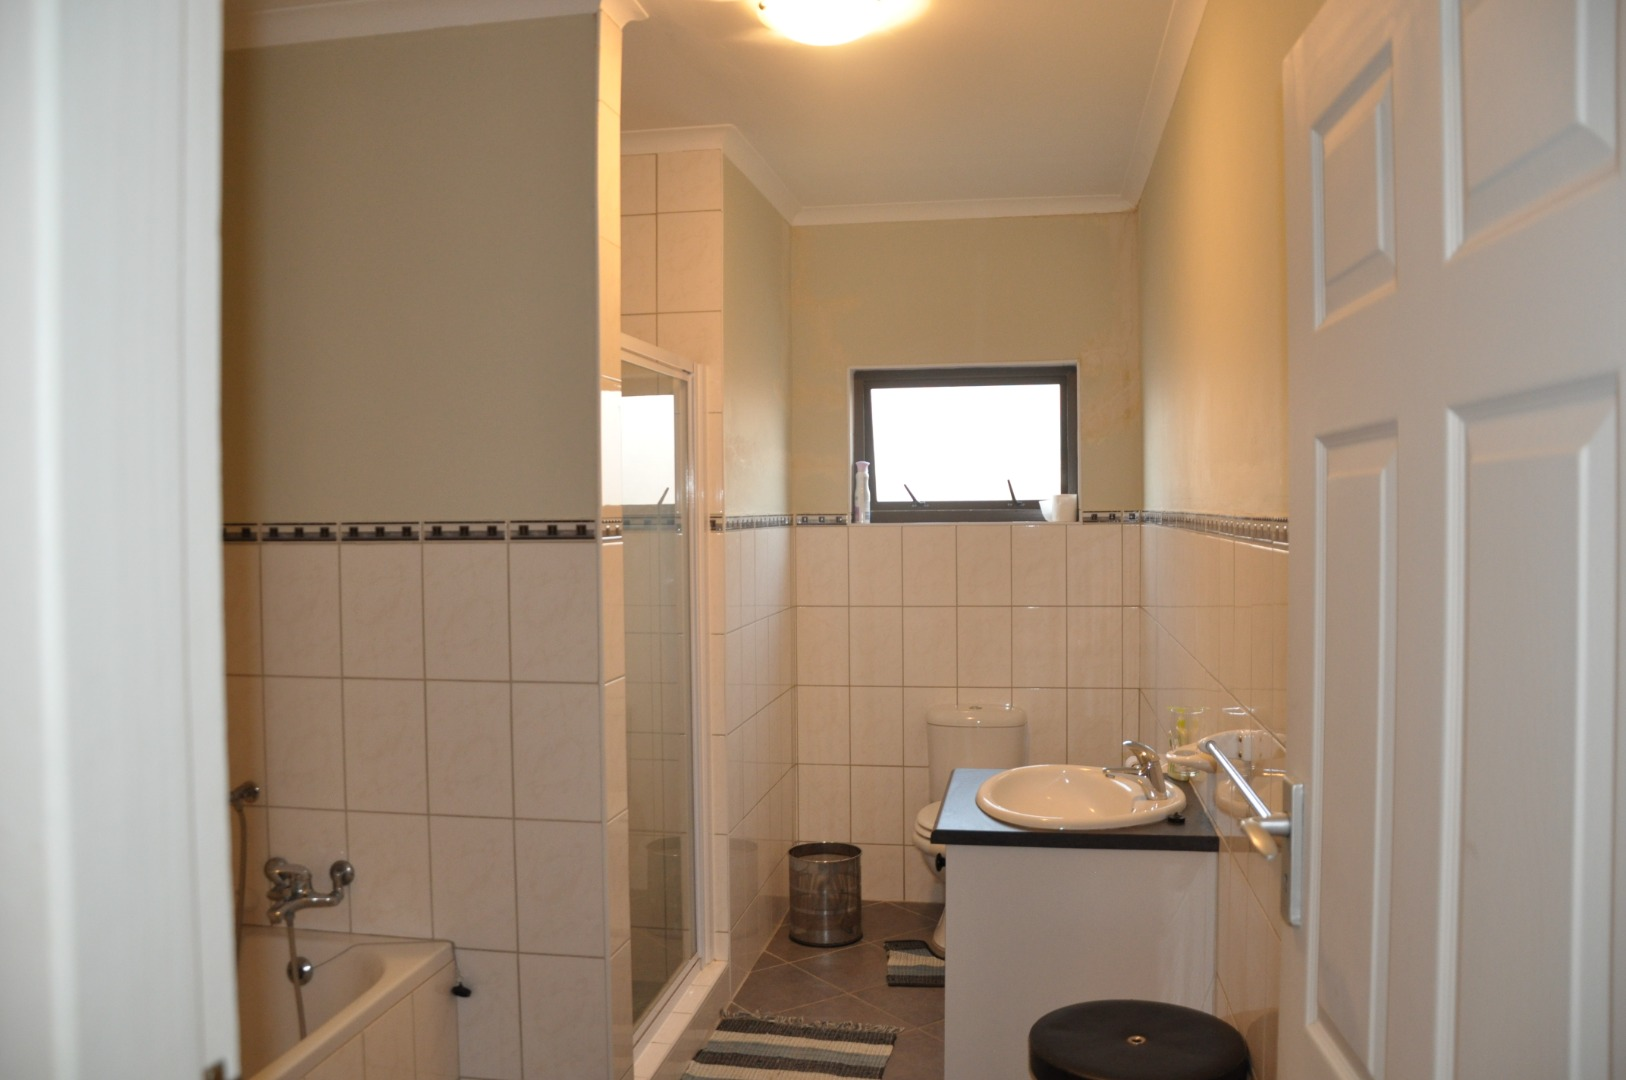 3 Bedroom Townhouse For Sale in Langstrand